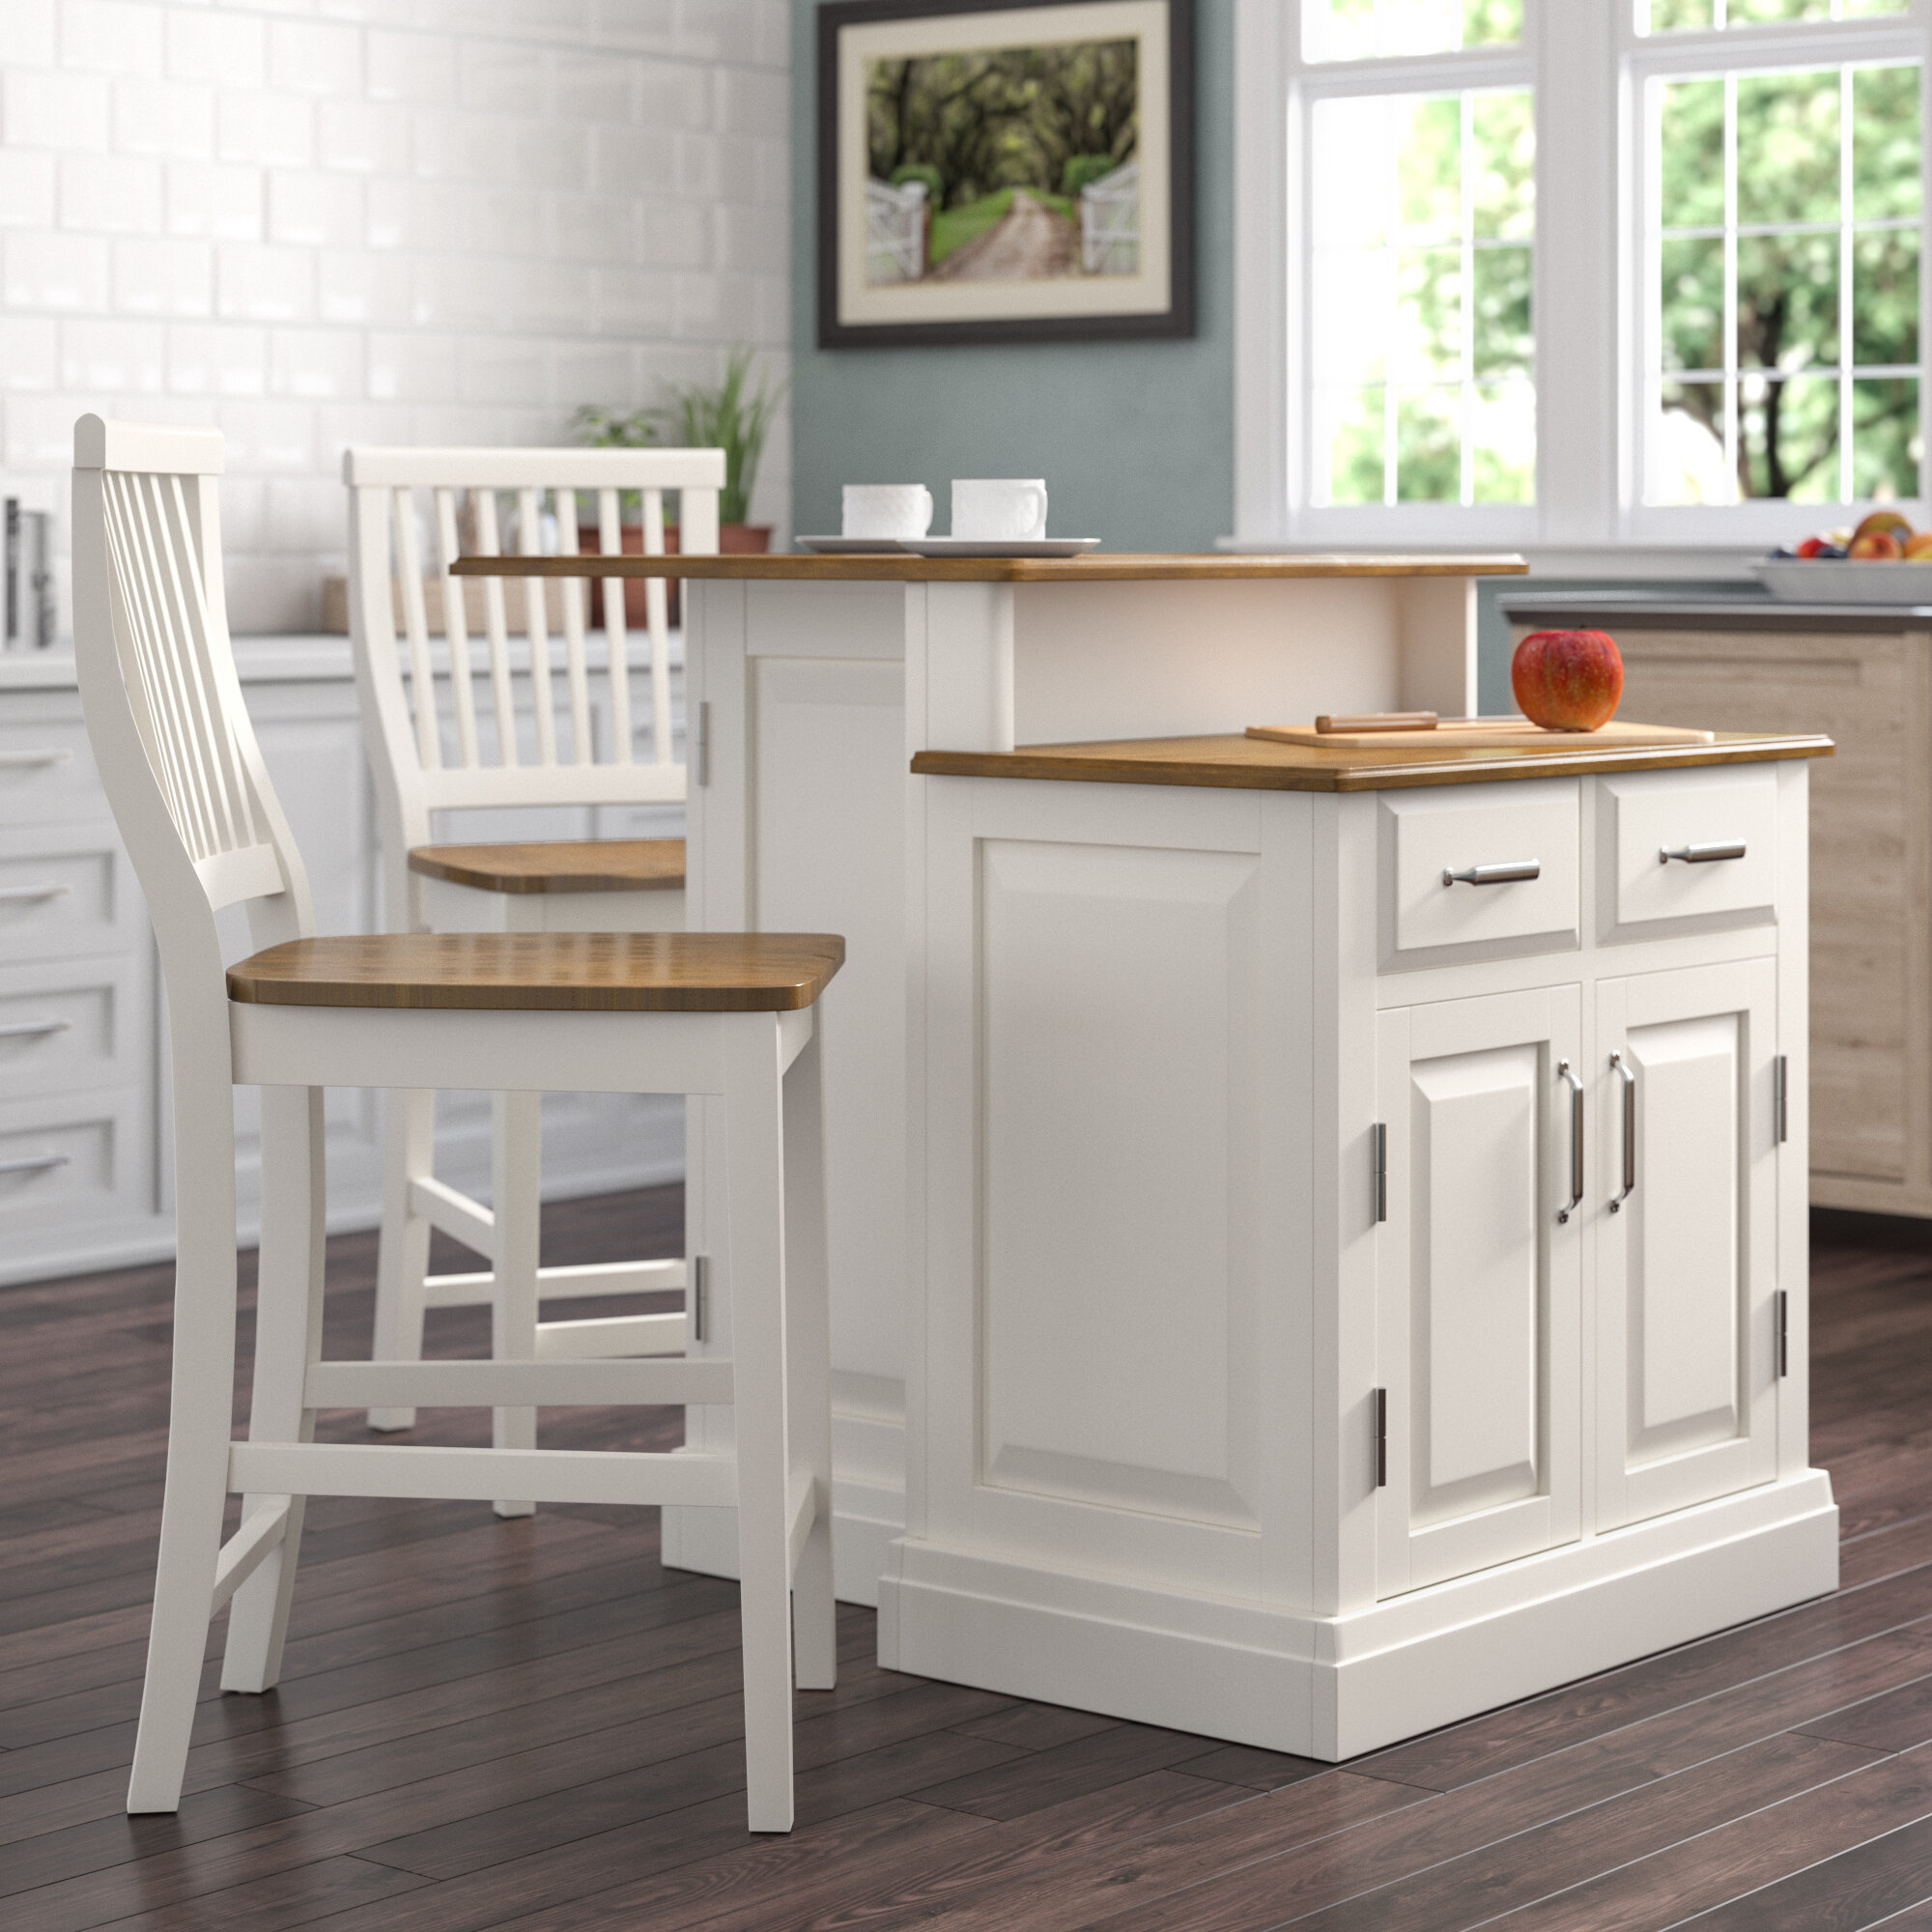 Darby Home Co Susana 3 Piece Kitchen Island Set With Wood Top Reviews Wayfair